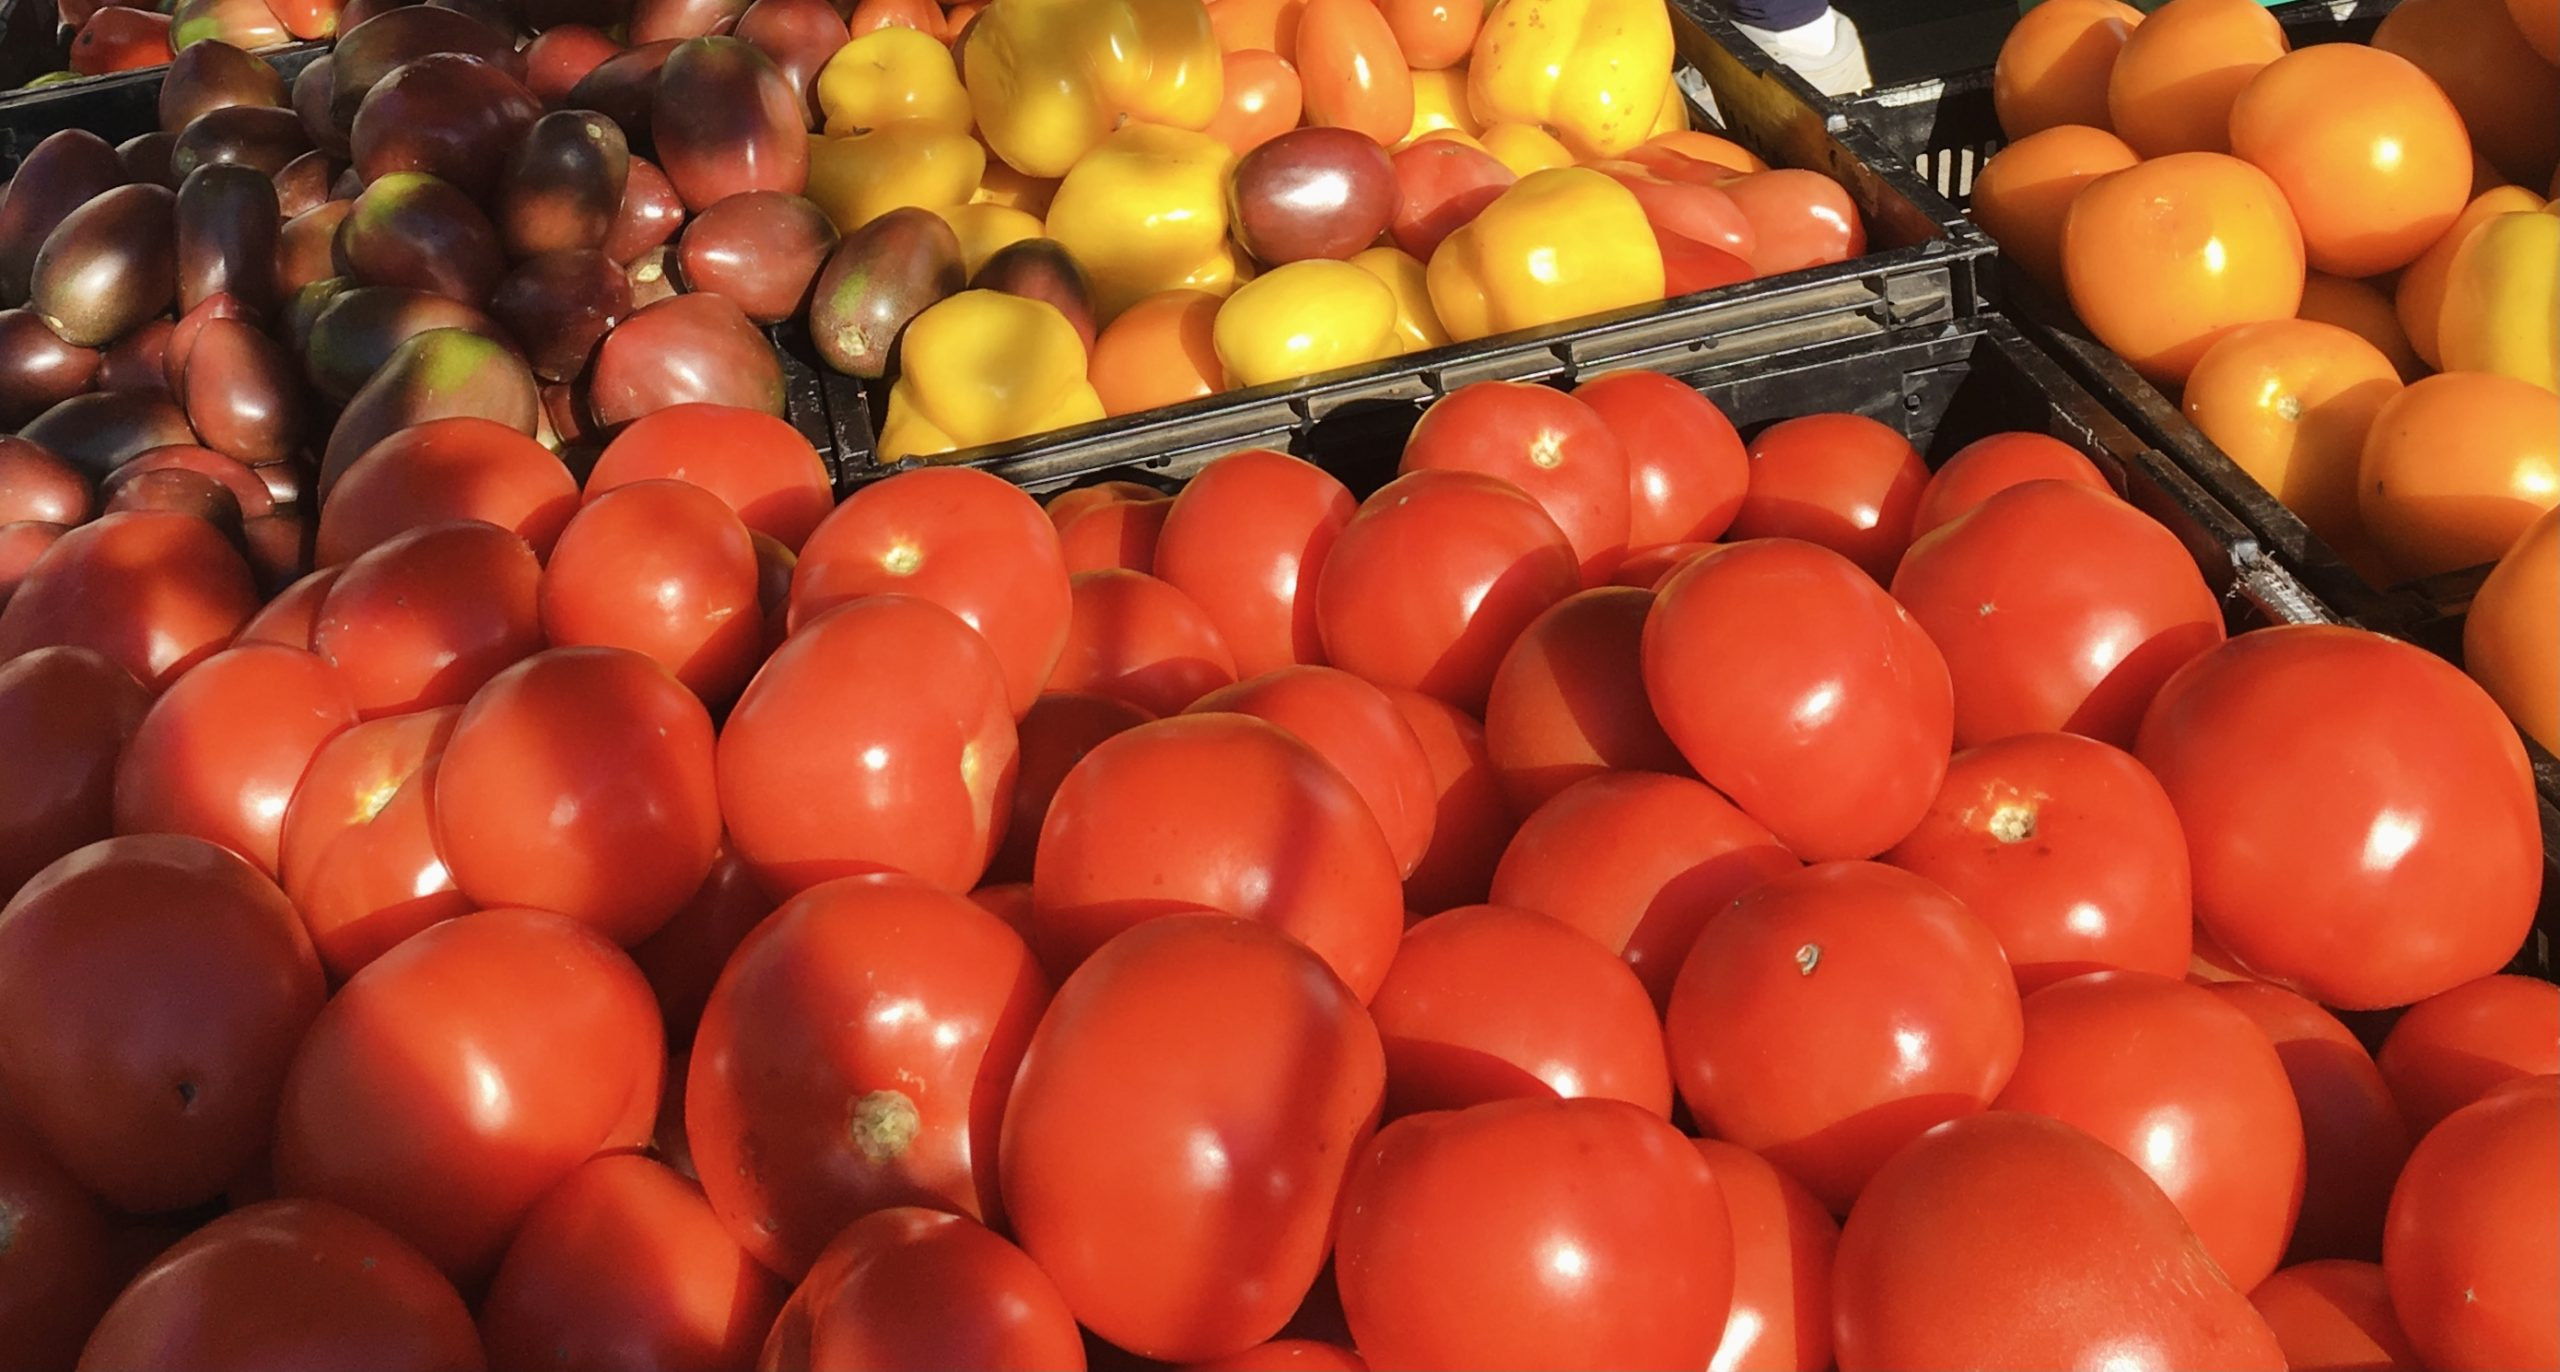 red tomatoes in a large box at a market